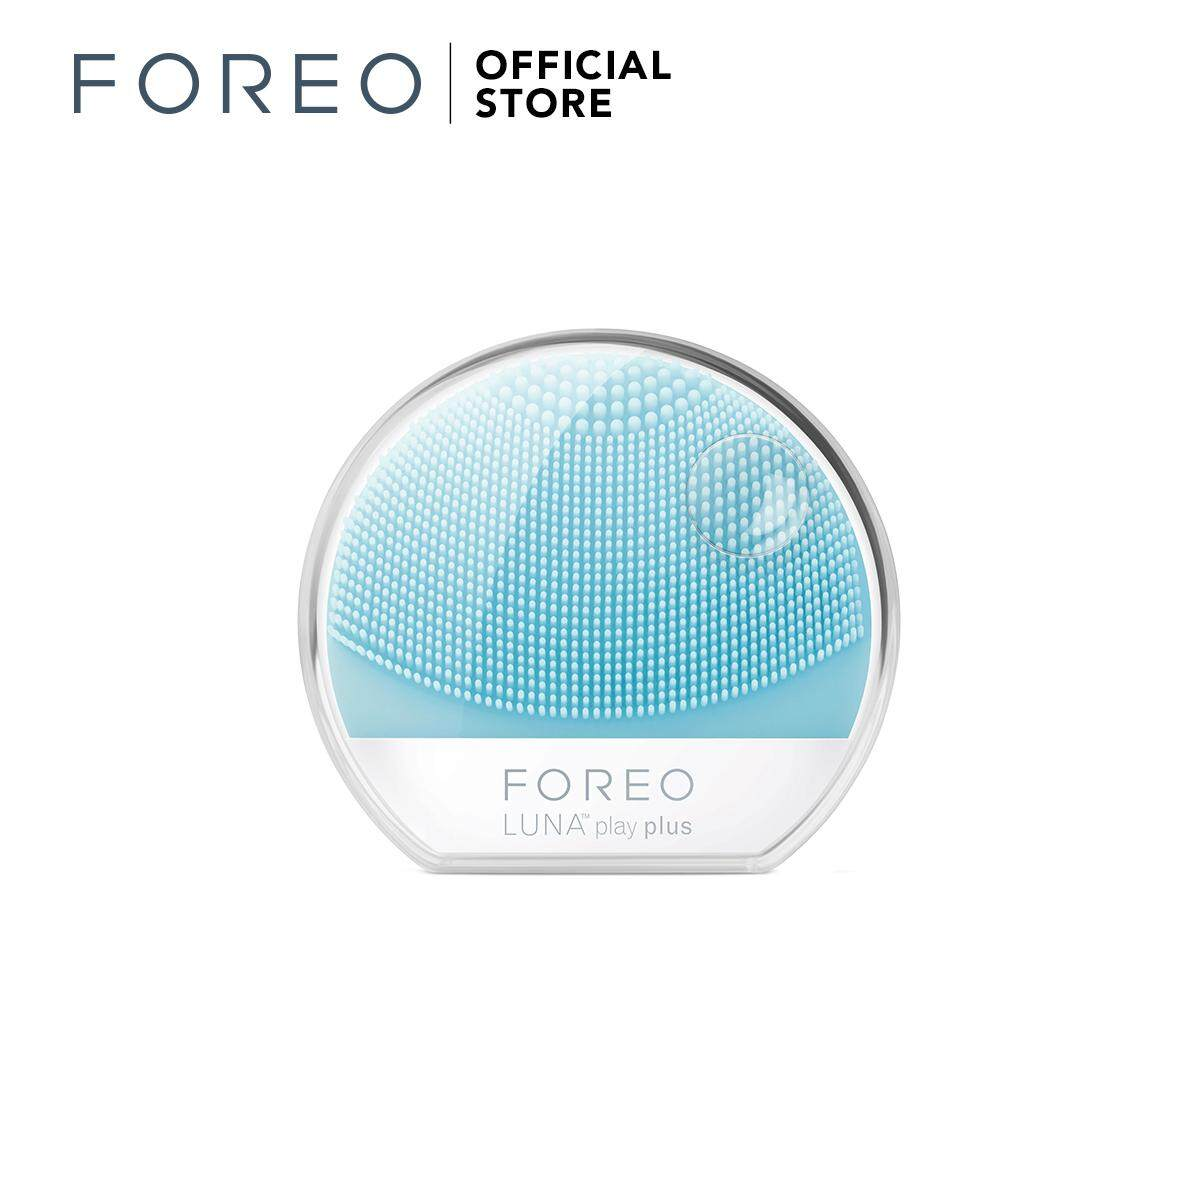 ภูเก็ต FOREO LUNA play plus Mint